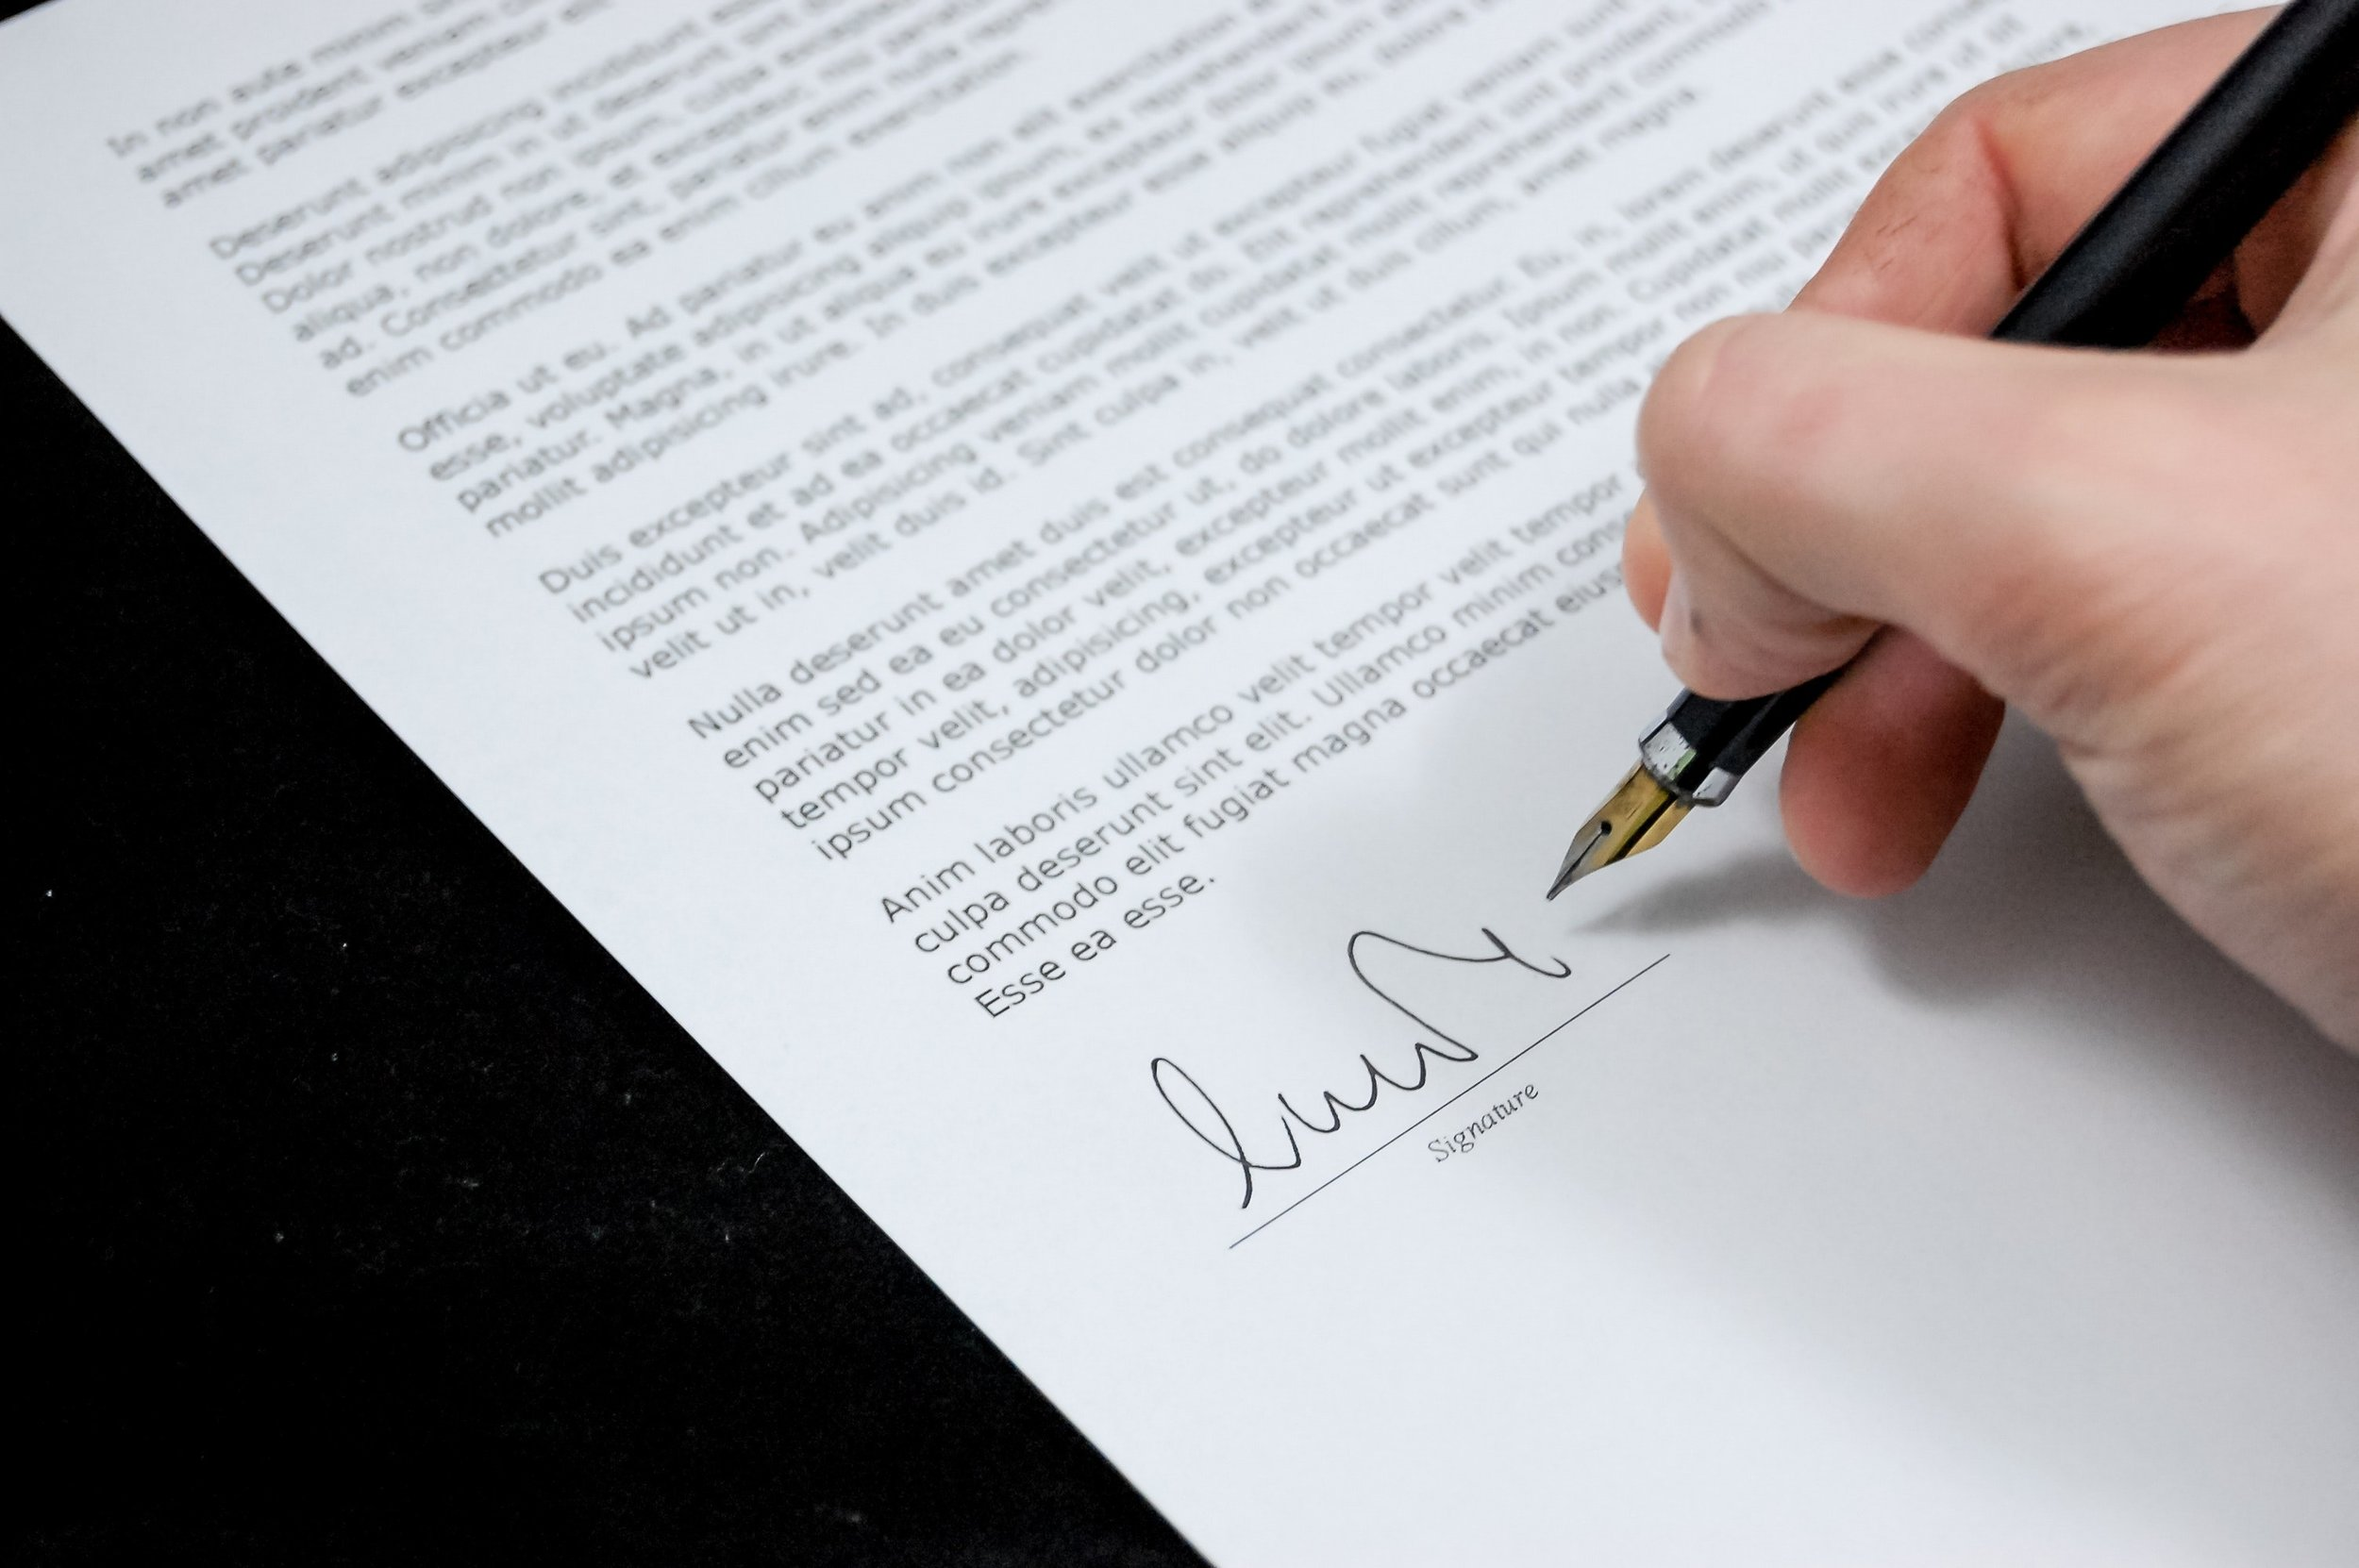 Digital signatures help secure new business more efficiently